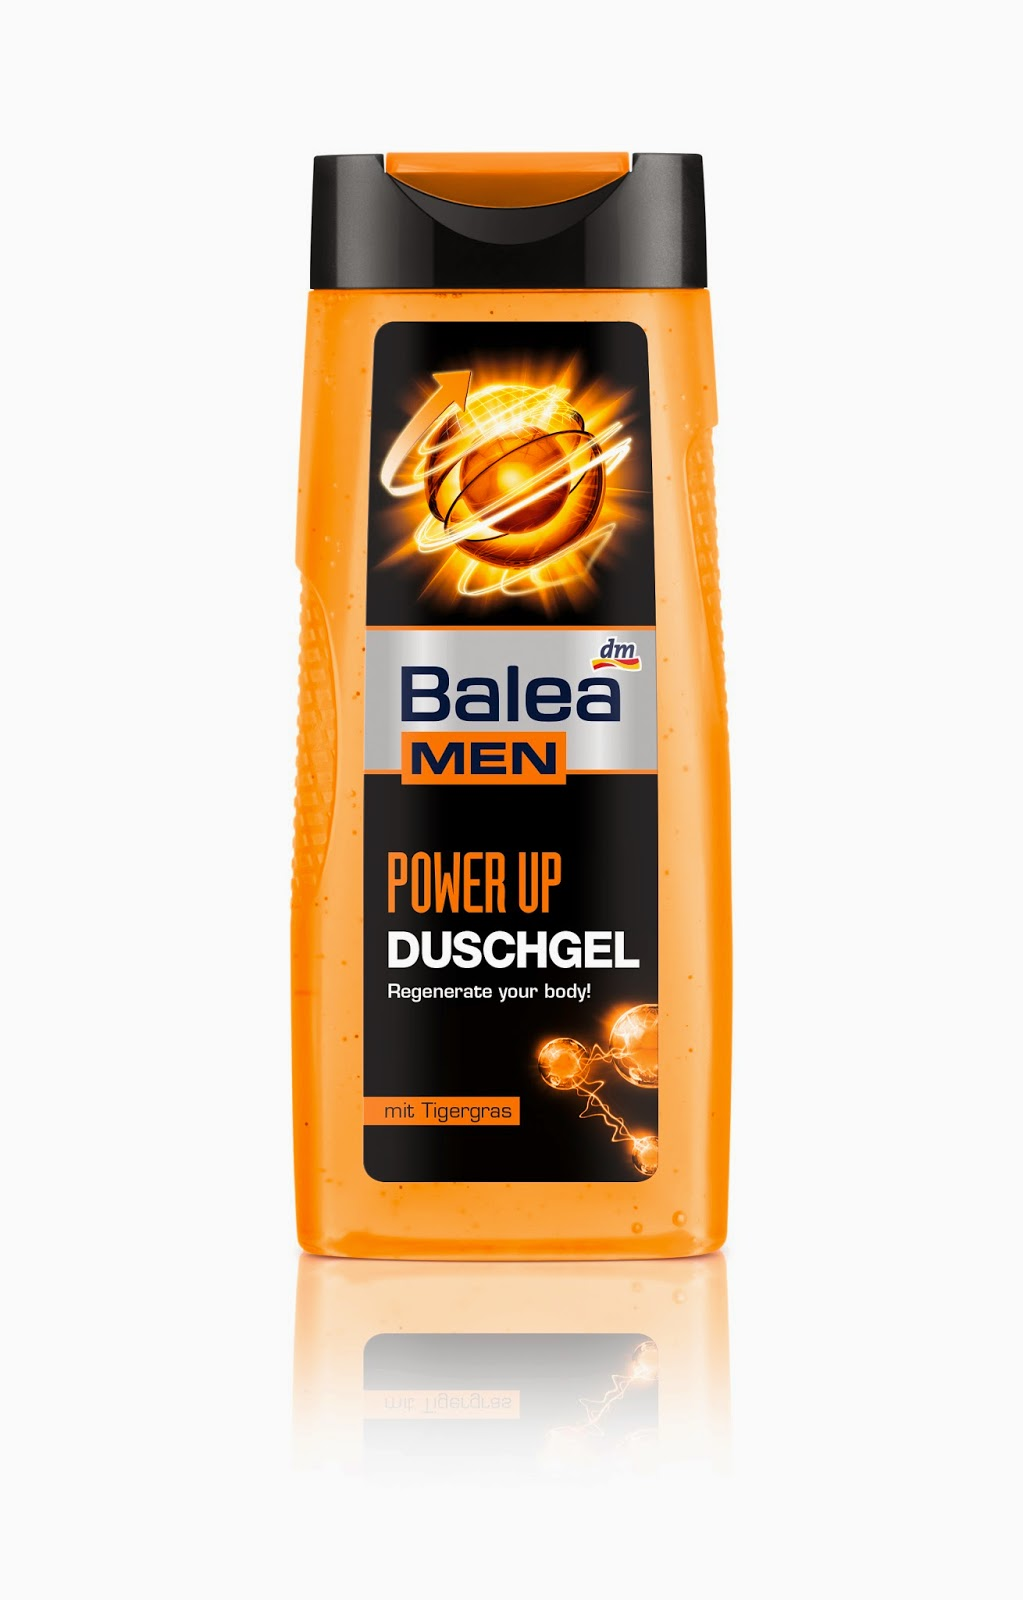 Balea MEN power up Duschgel - www.annitschkasblog.de